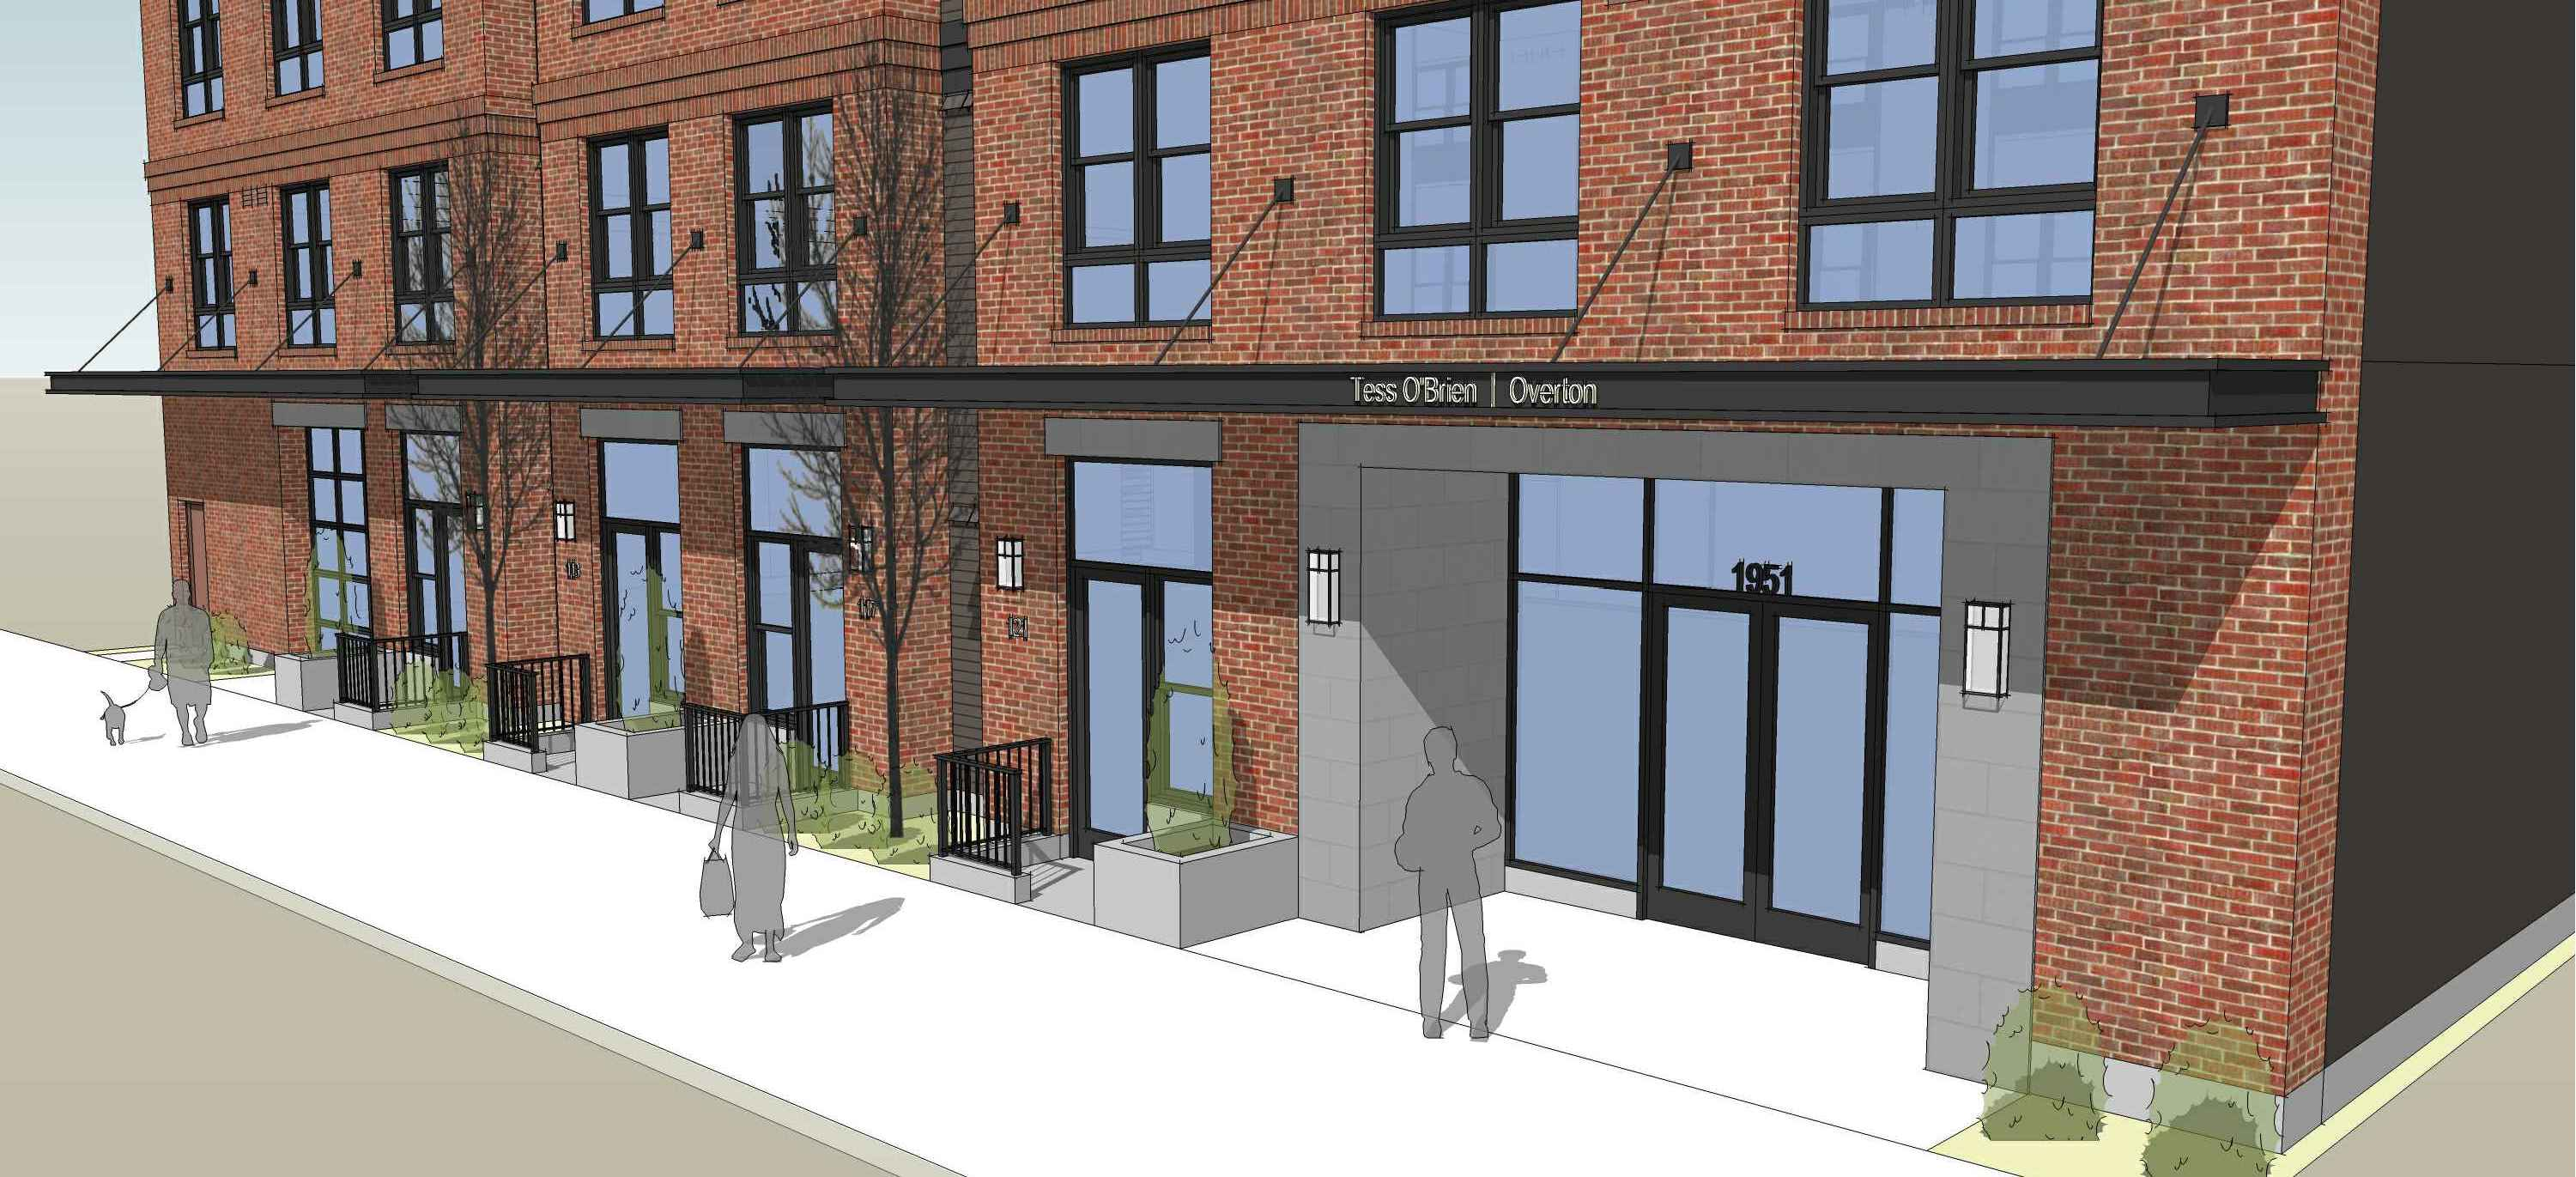 tess o brien apartments set for approval updated next portland